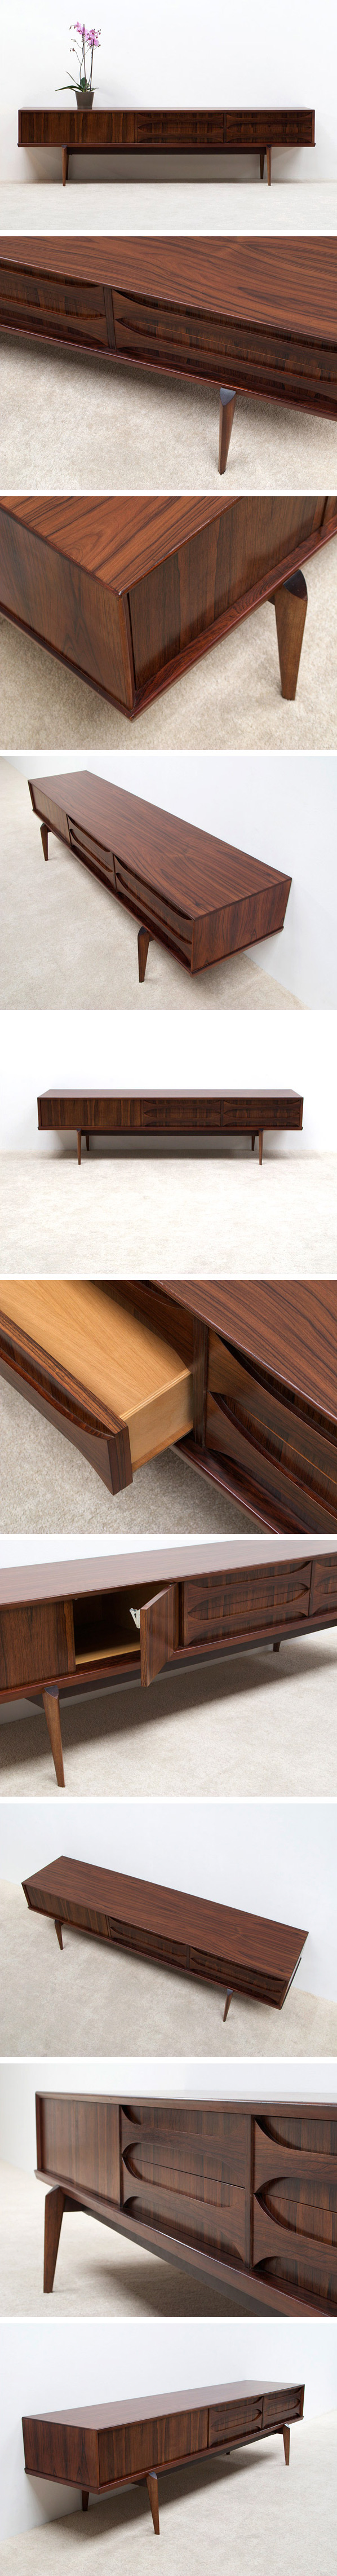 Rosewood Ultra low V-form Paola sideboard designed by Oswald Vermaercke Large